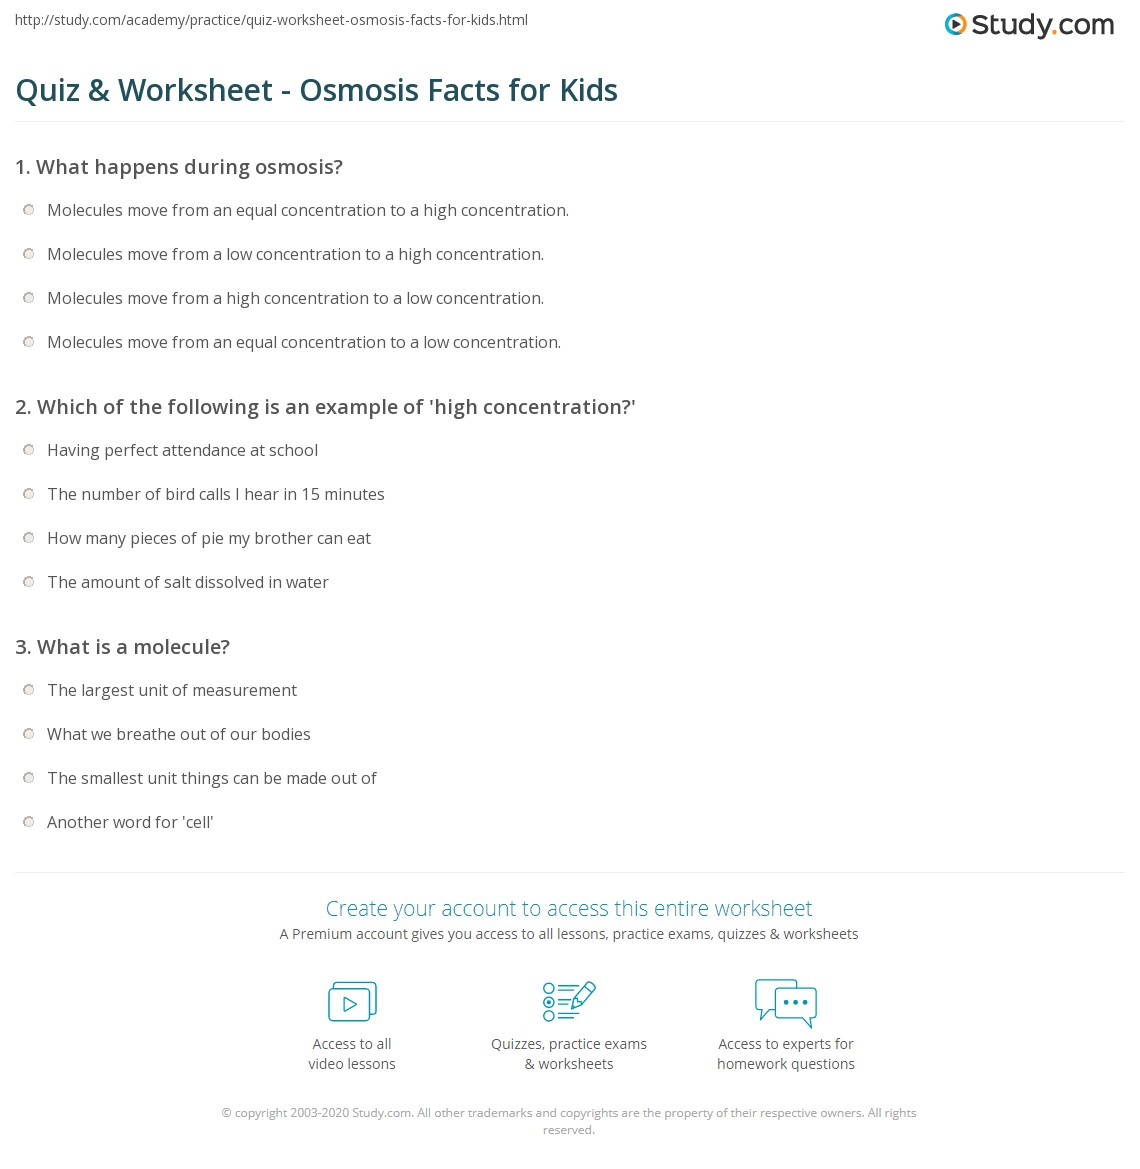 Quiz & Worksheet - Osmosis Facts for Kids | Study.com